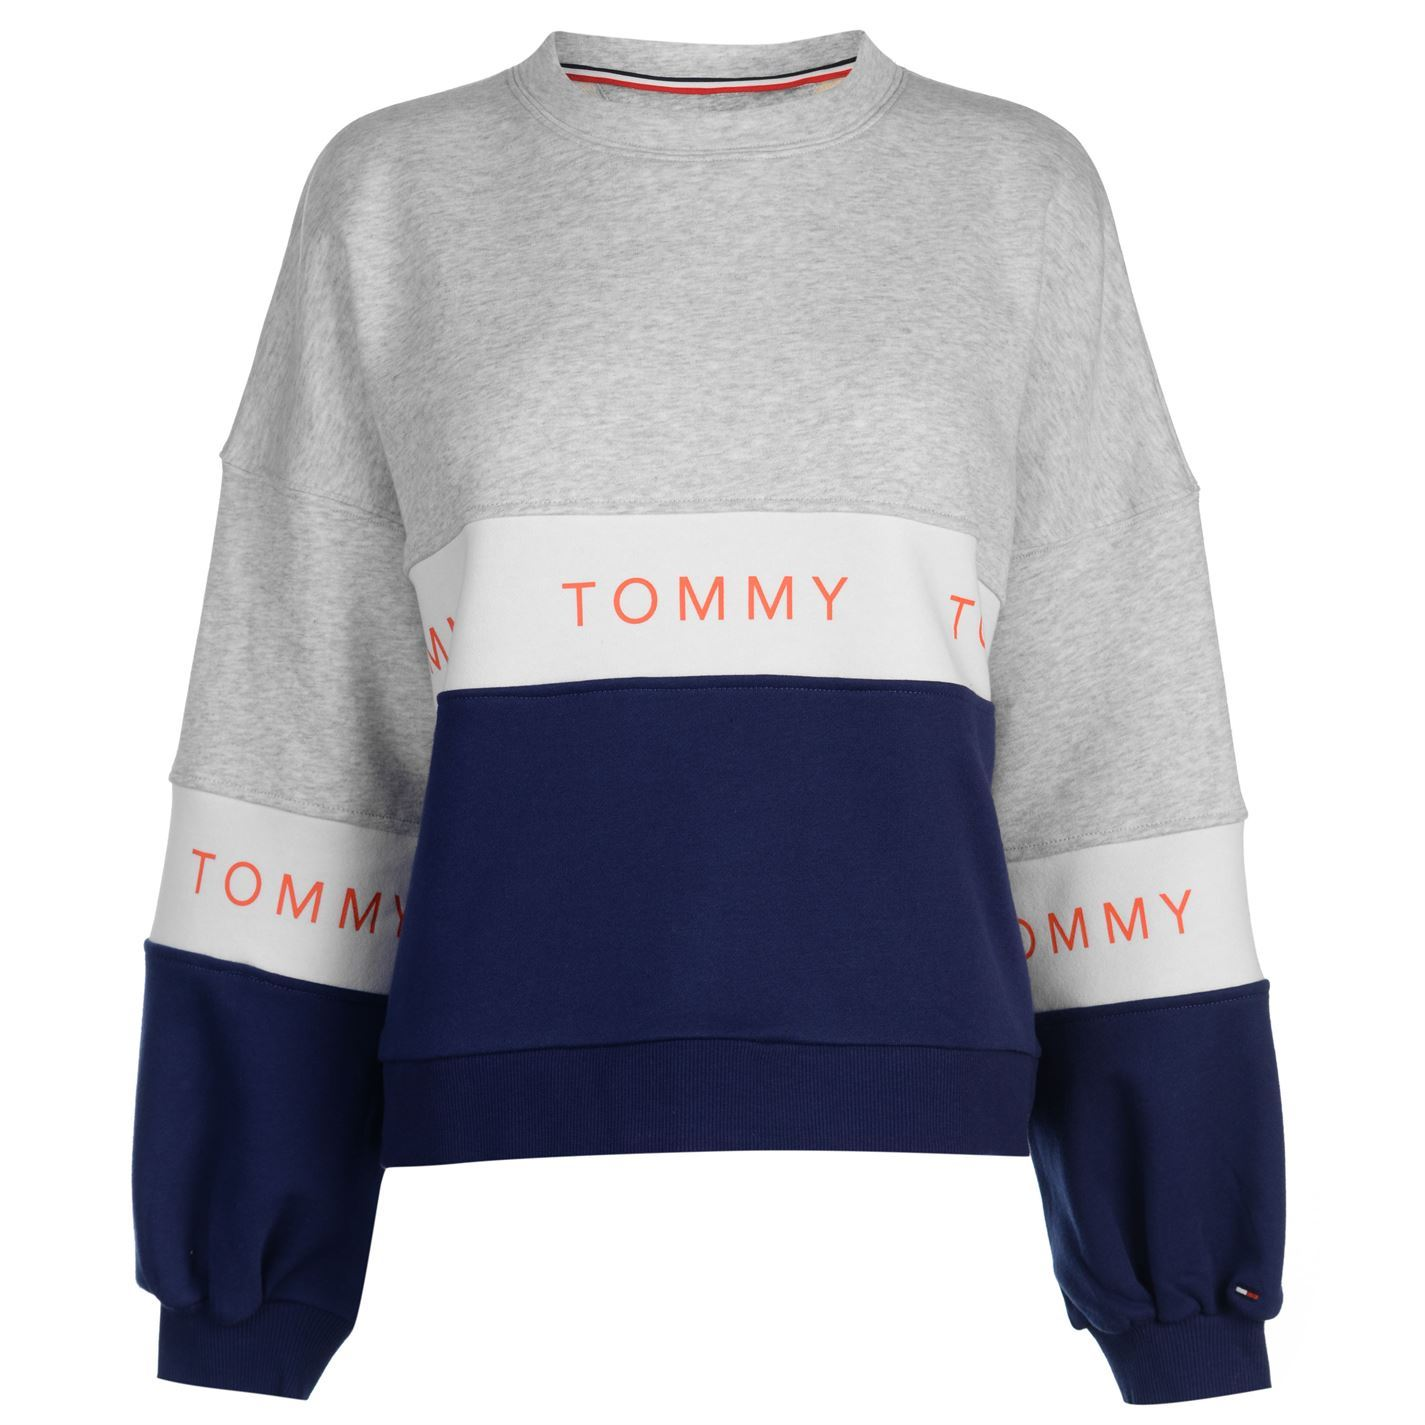 5c9e999a1 Image is loading Womens-Tommy-Jeans-Tri-Colour-Sweatshirt-Crew-Sweater-